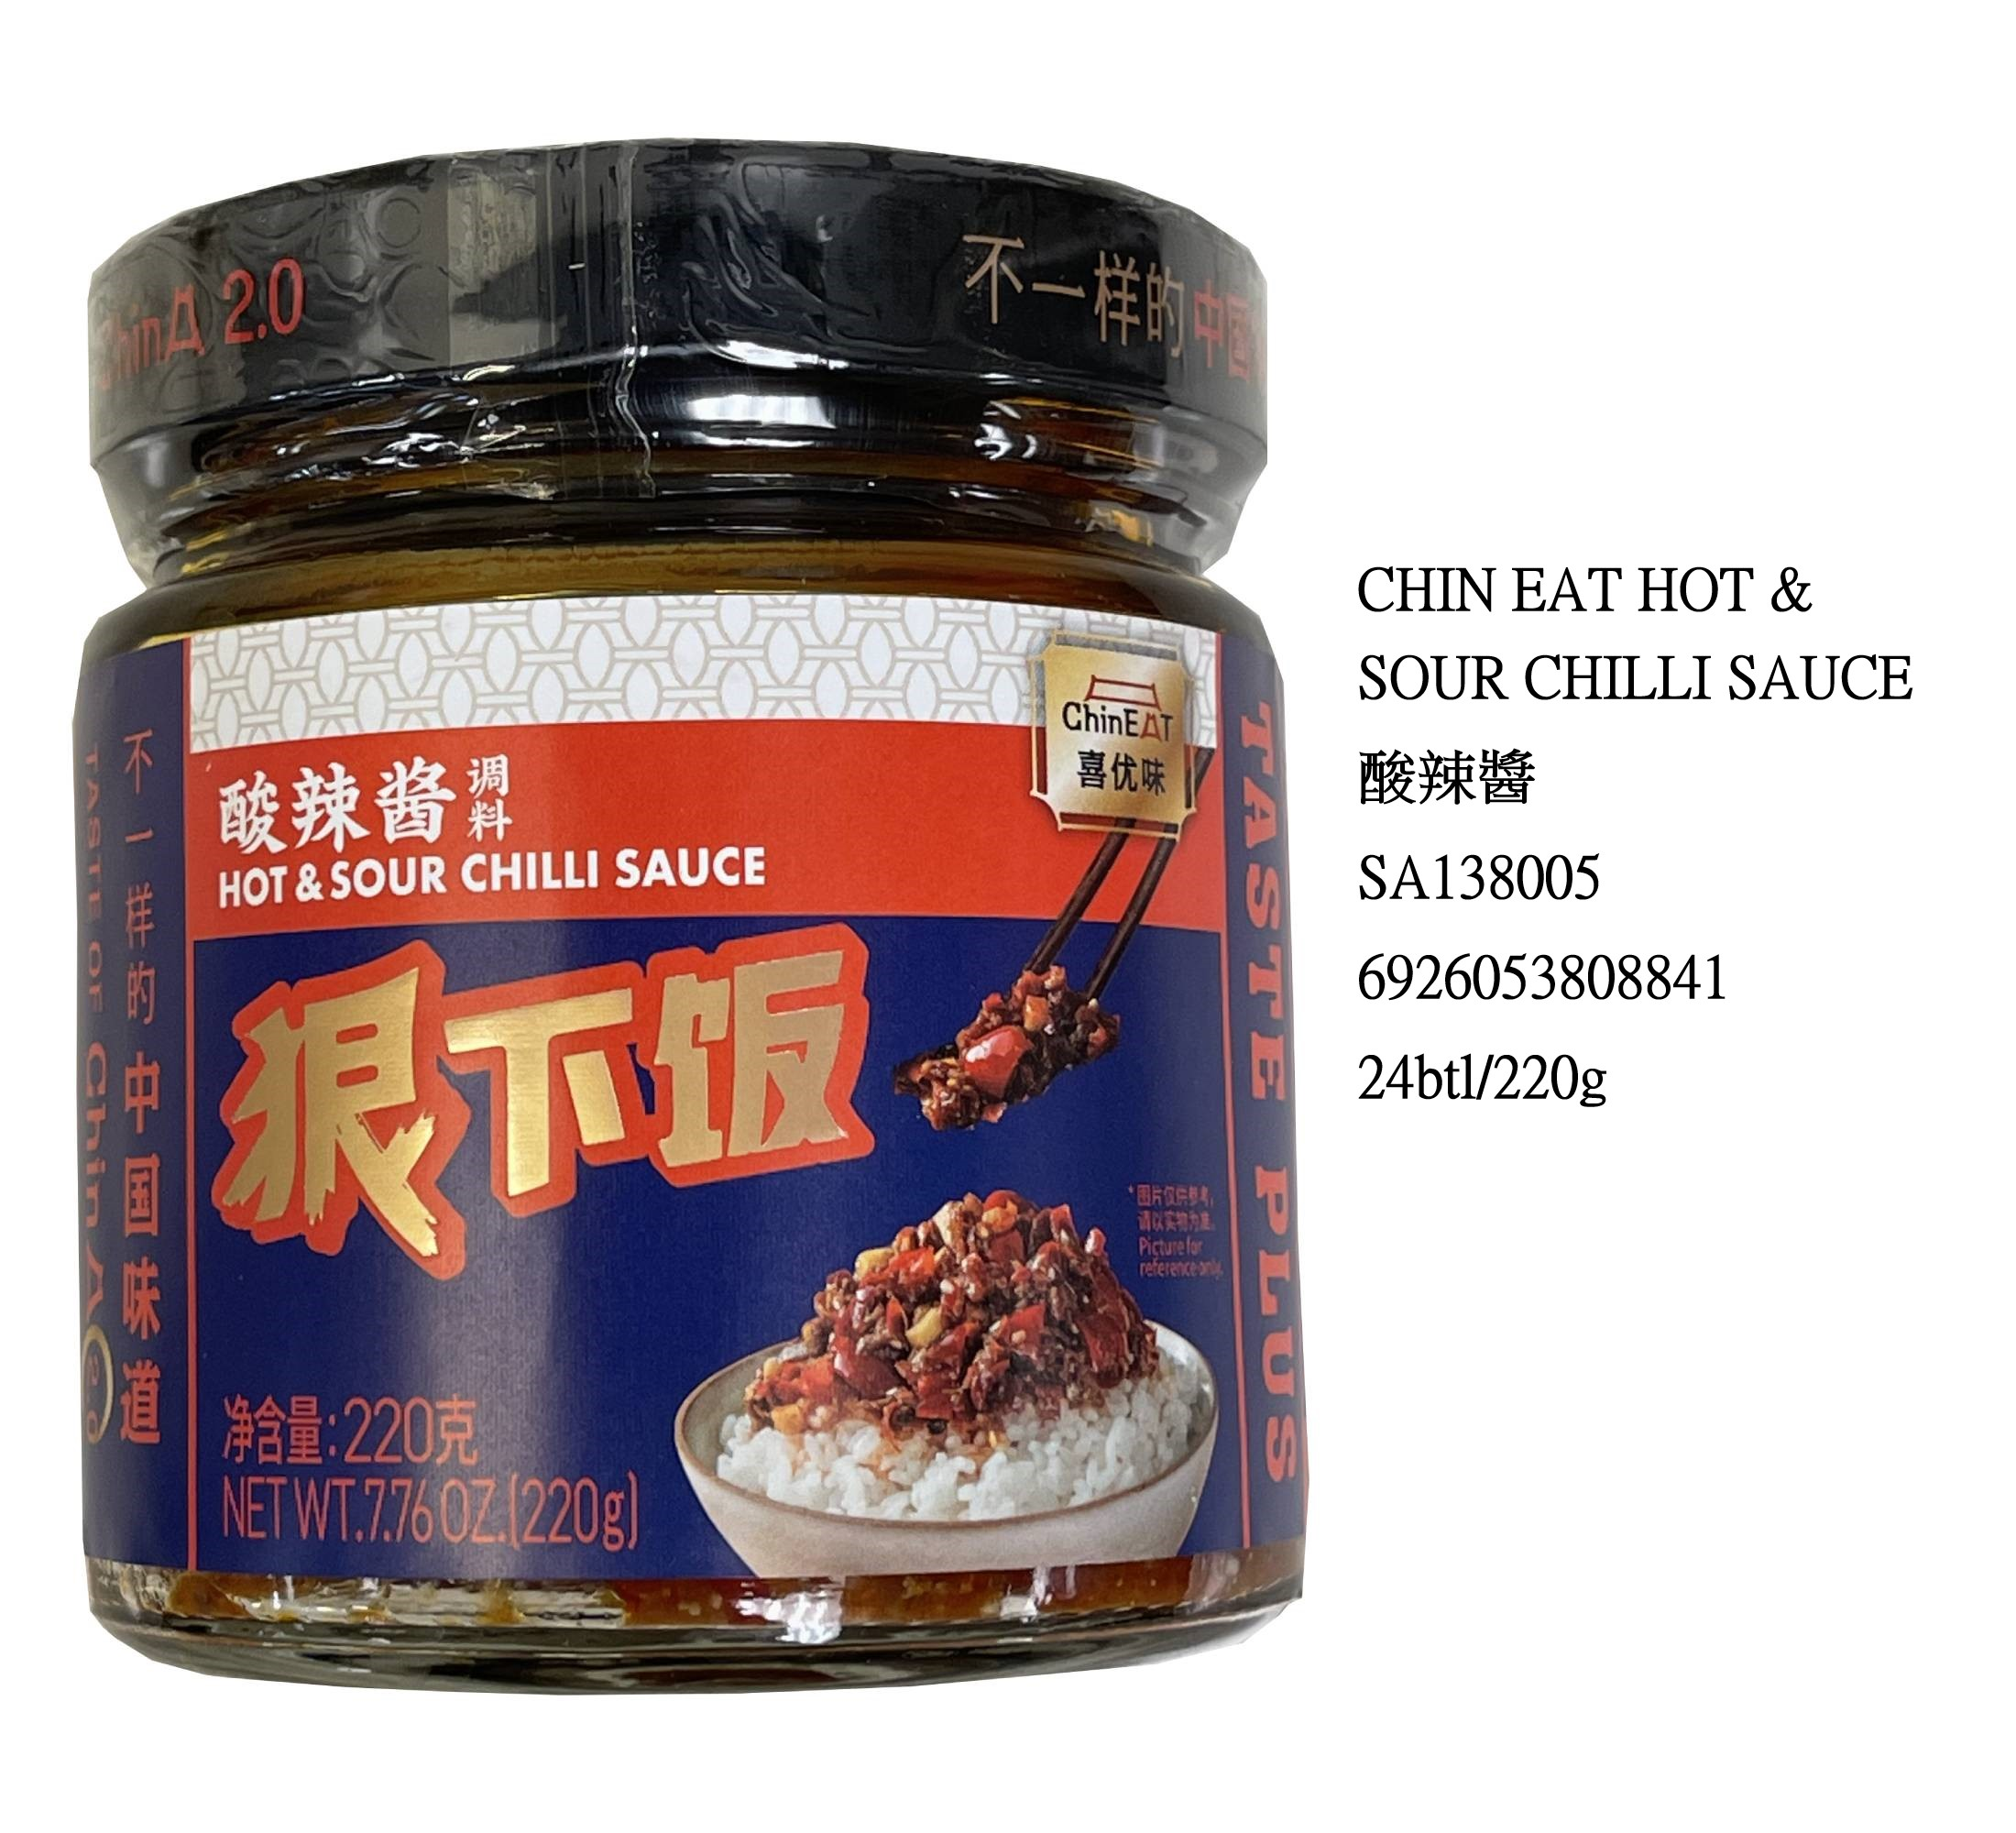 CHINEAT HOT & SOUR CHILLI SAUCE SA138005